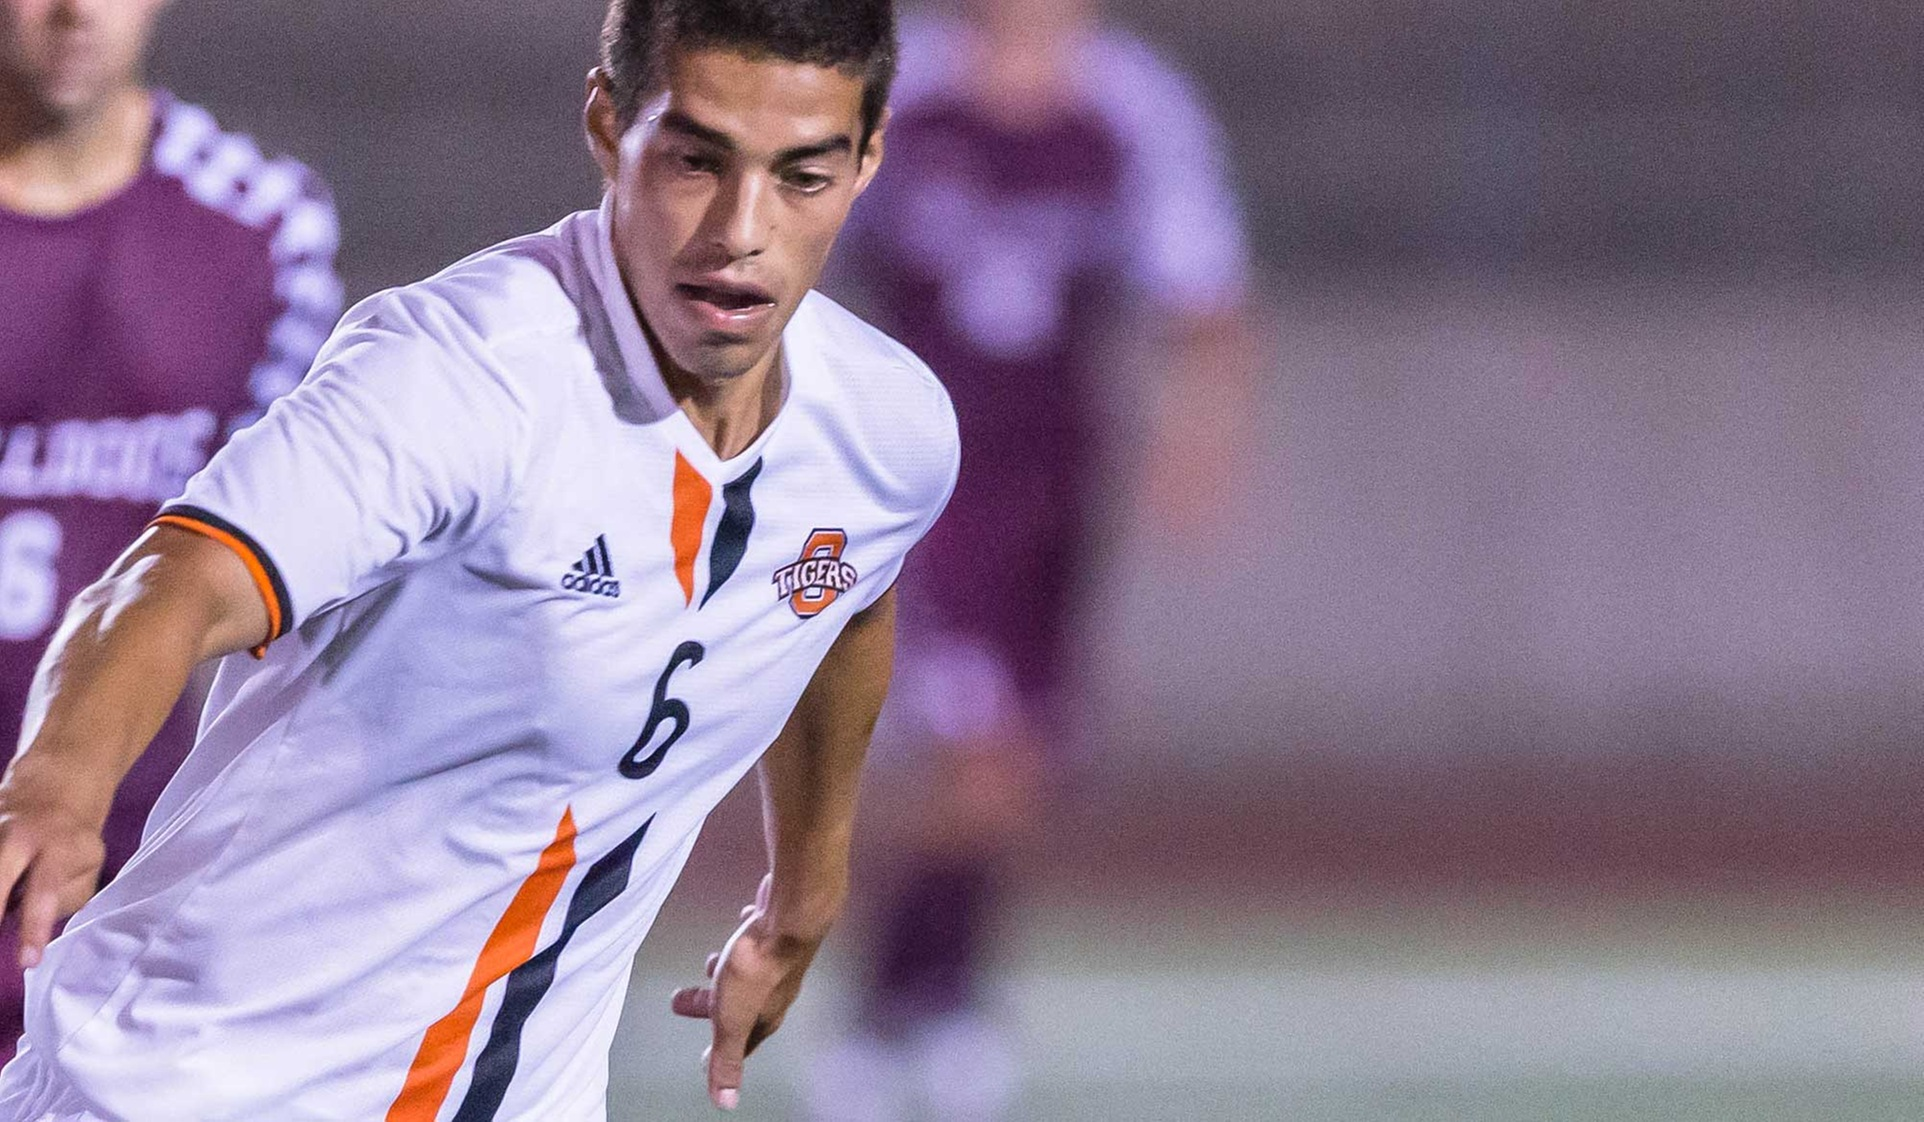 Oxy Wins at Redlands, Hosting SCIAC Championship